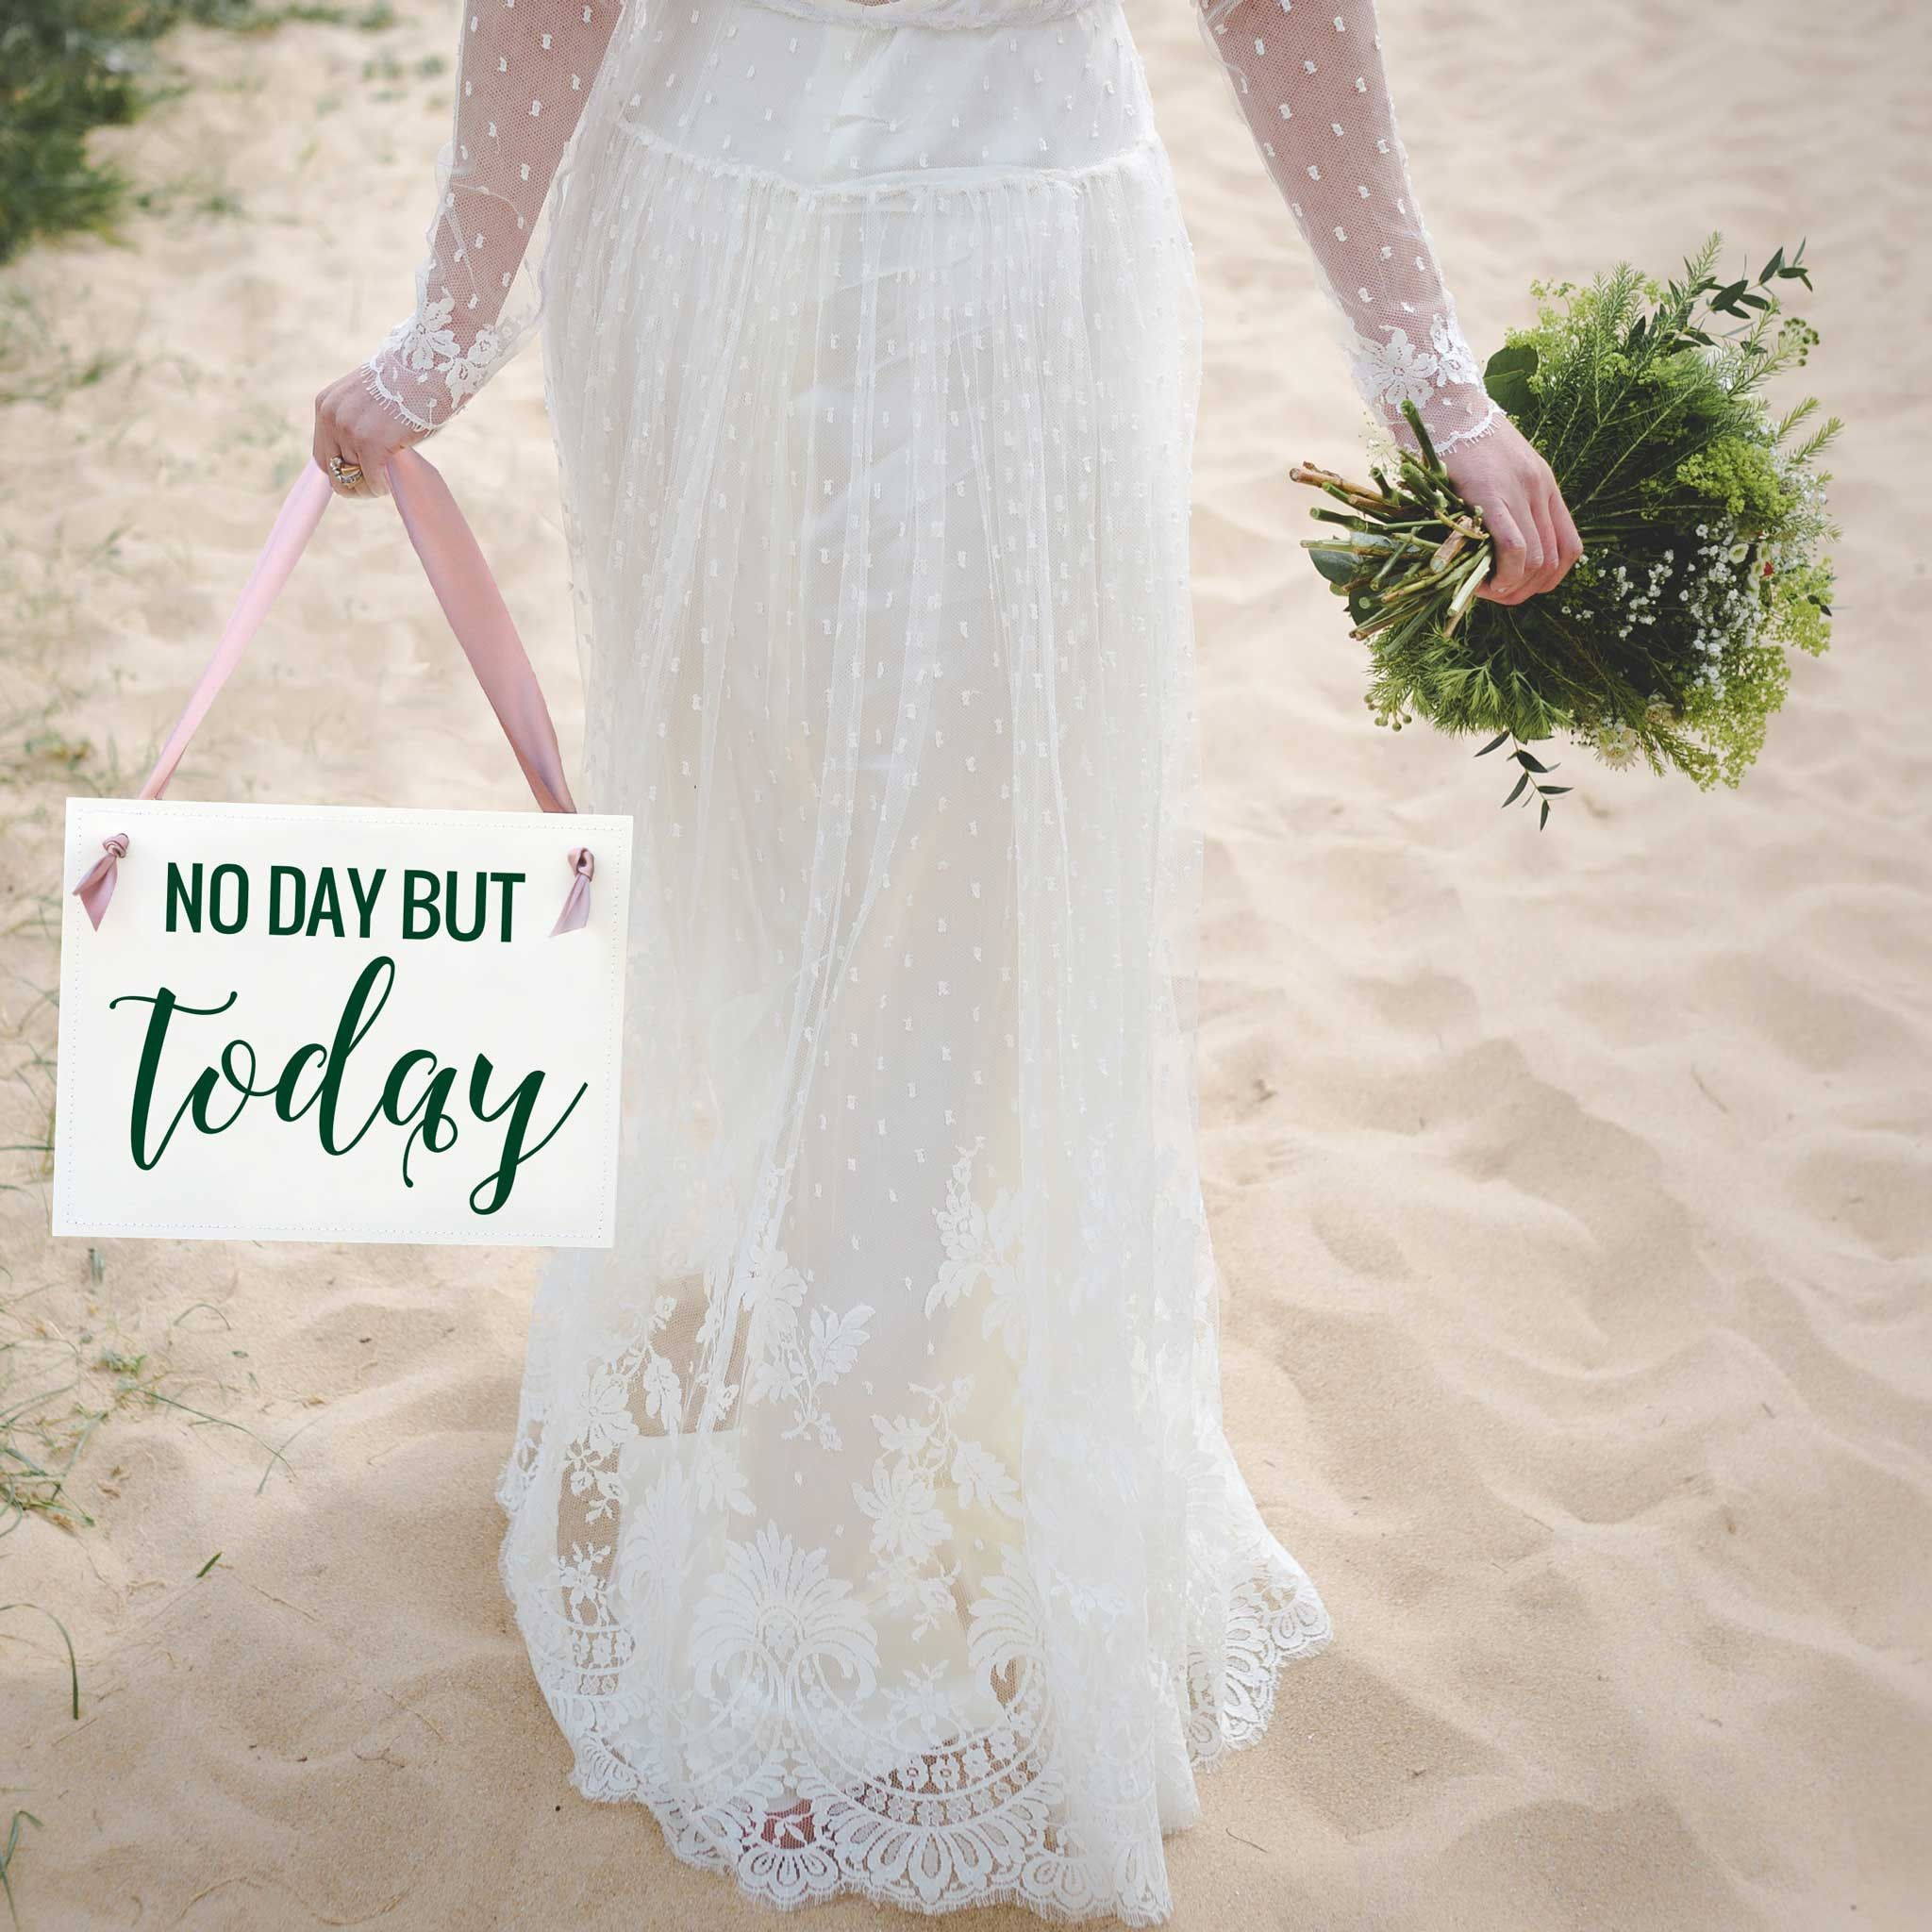 No Day But Today Sign (Broadway Musical RENT reference) - Wedding sign